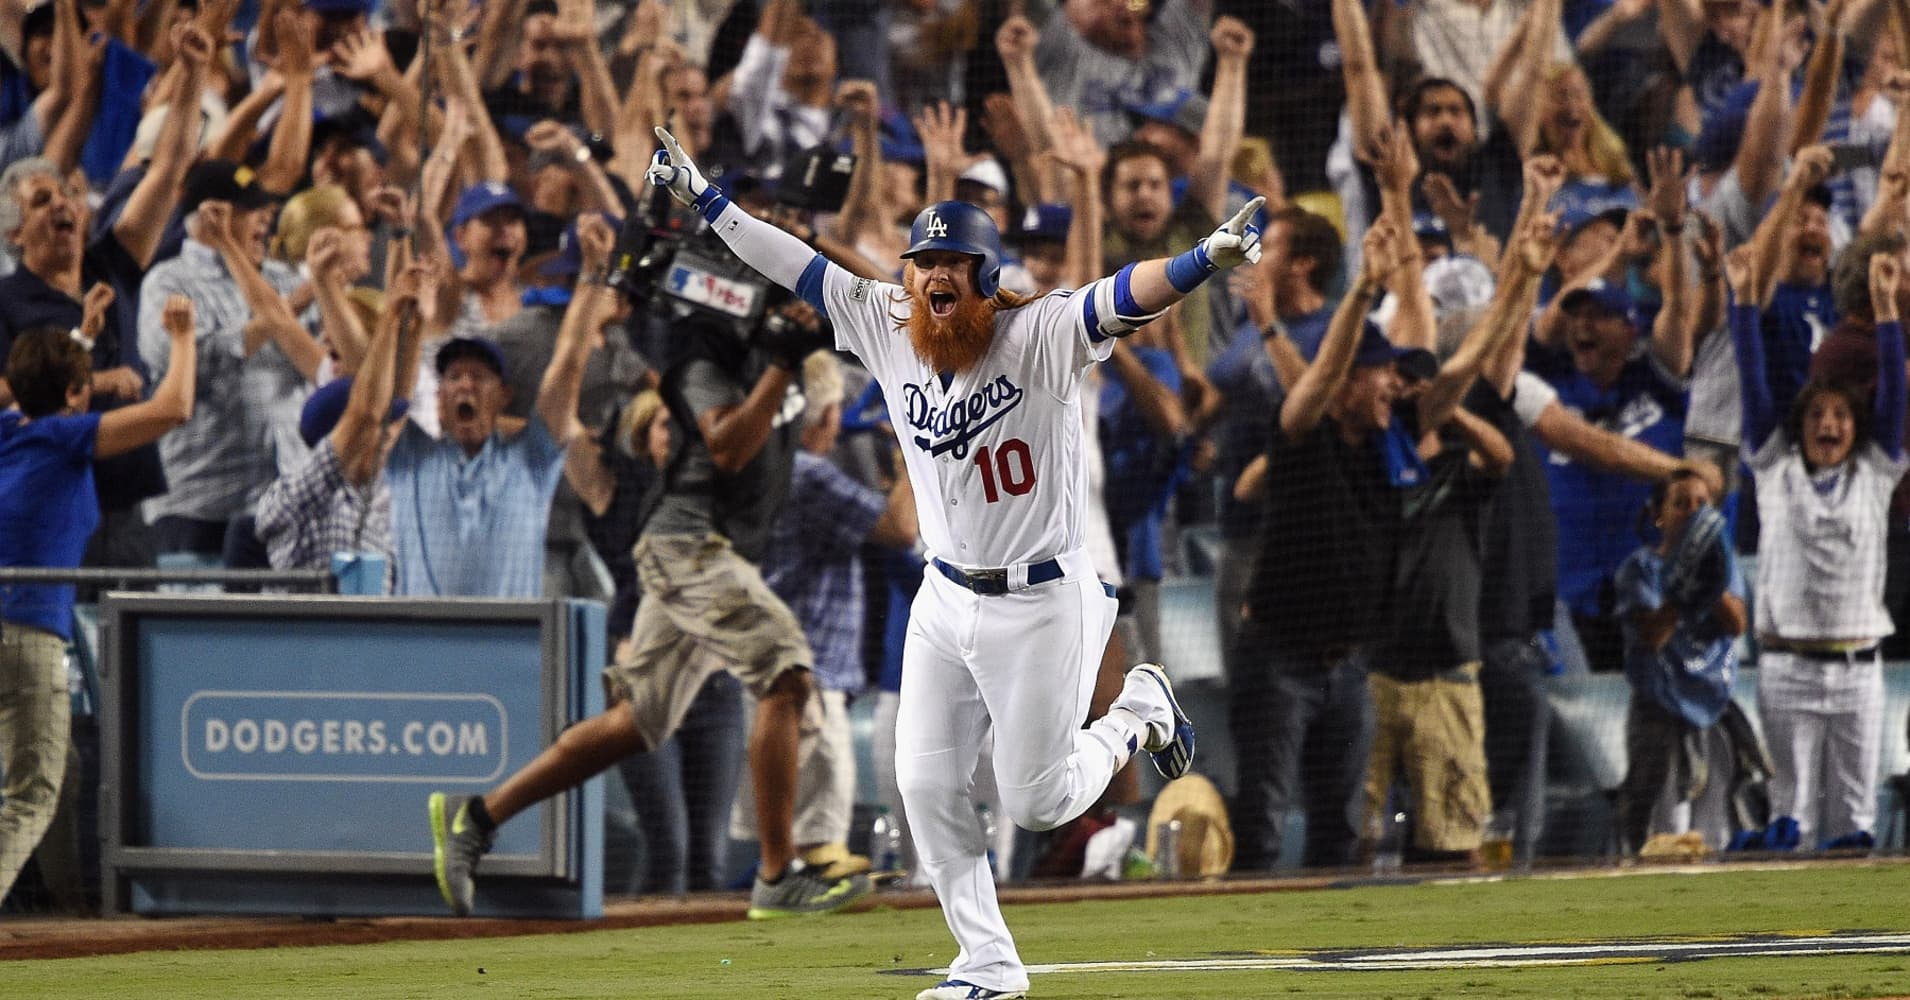 Justin Turner celebrates after hitting a walk-off homer to defeat the Chicago Cubs in game two of the National League Championship Series